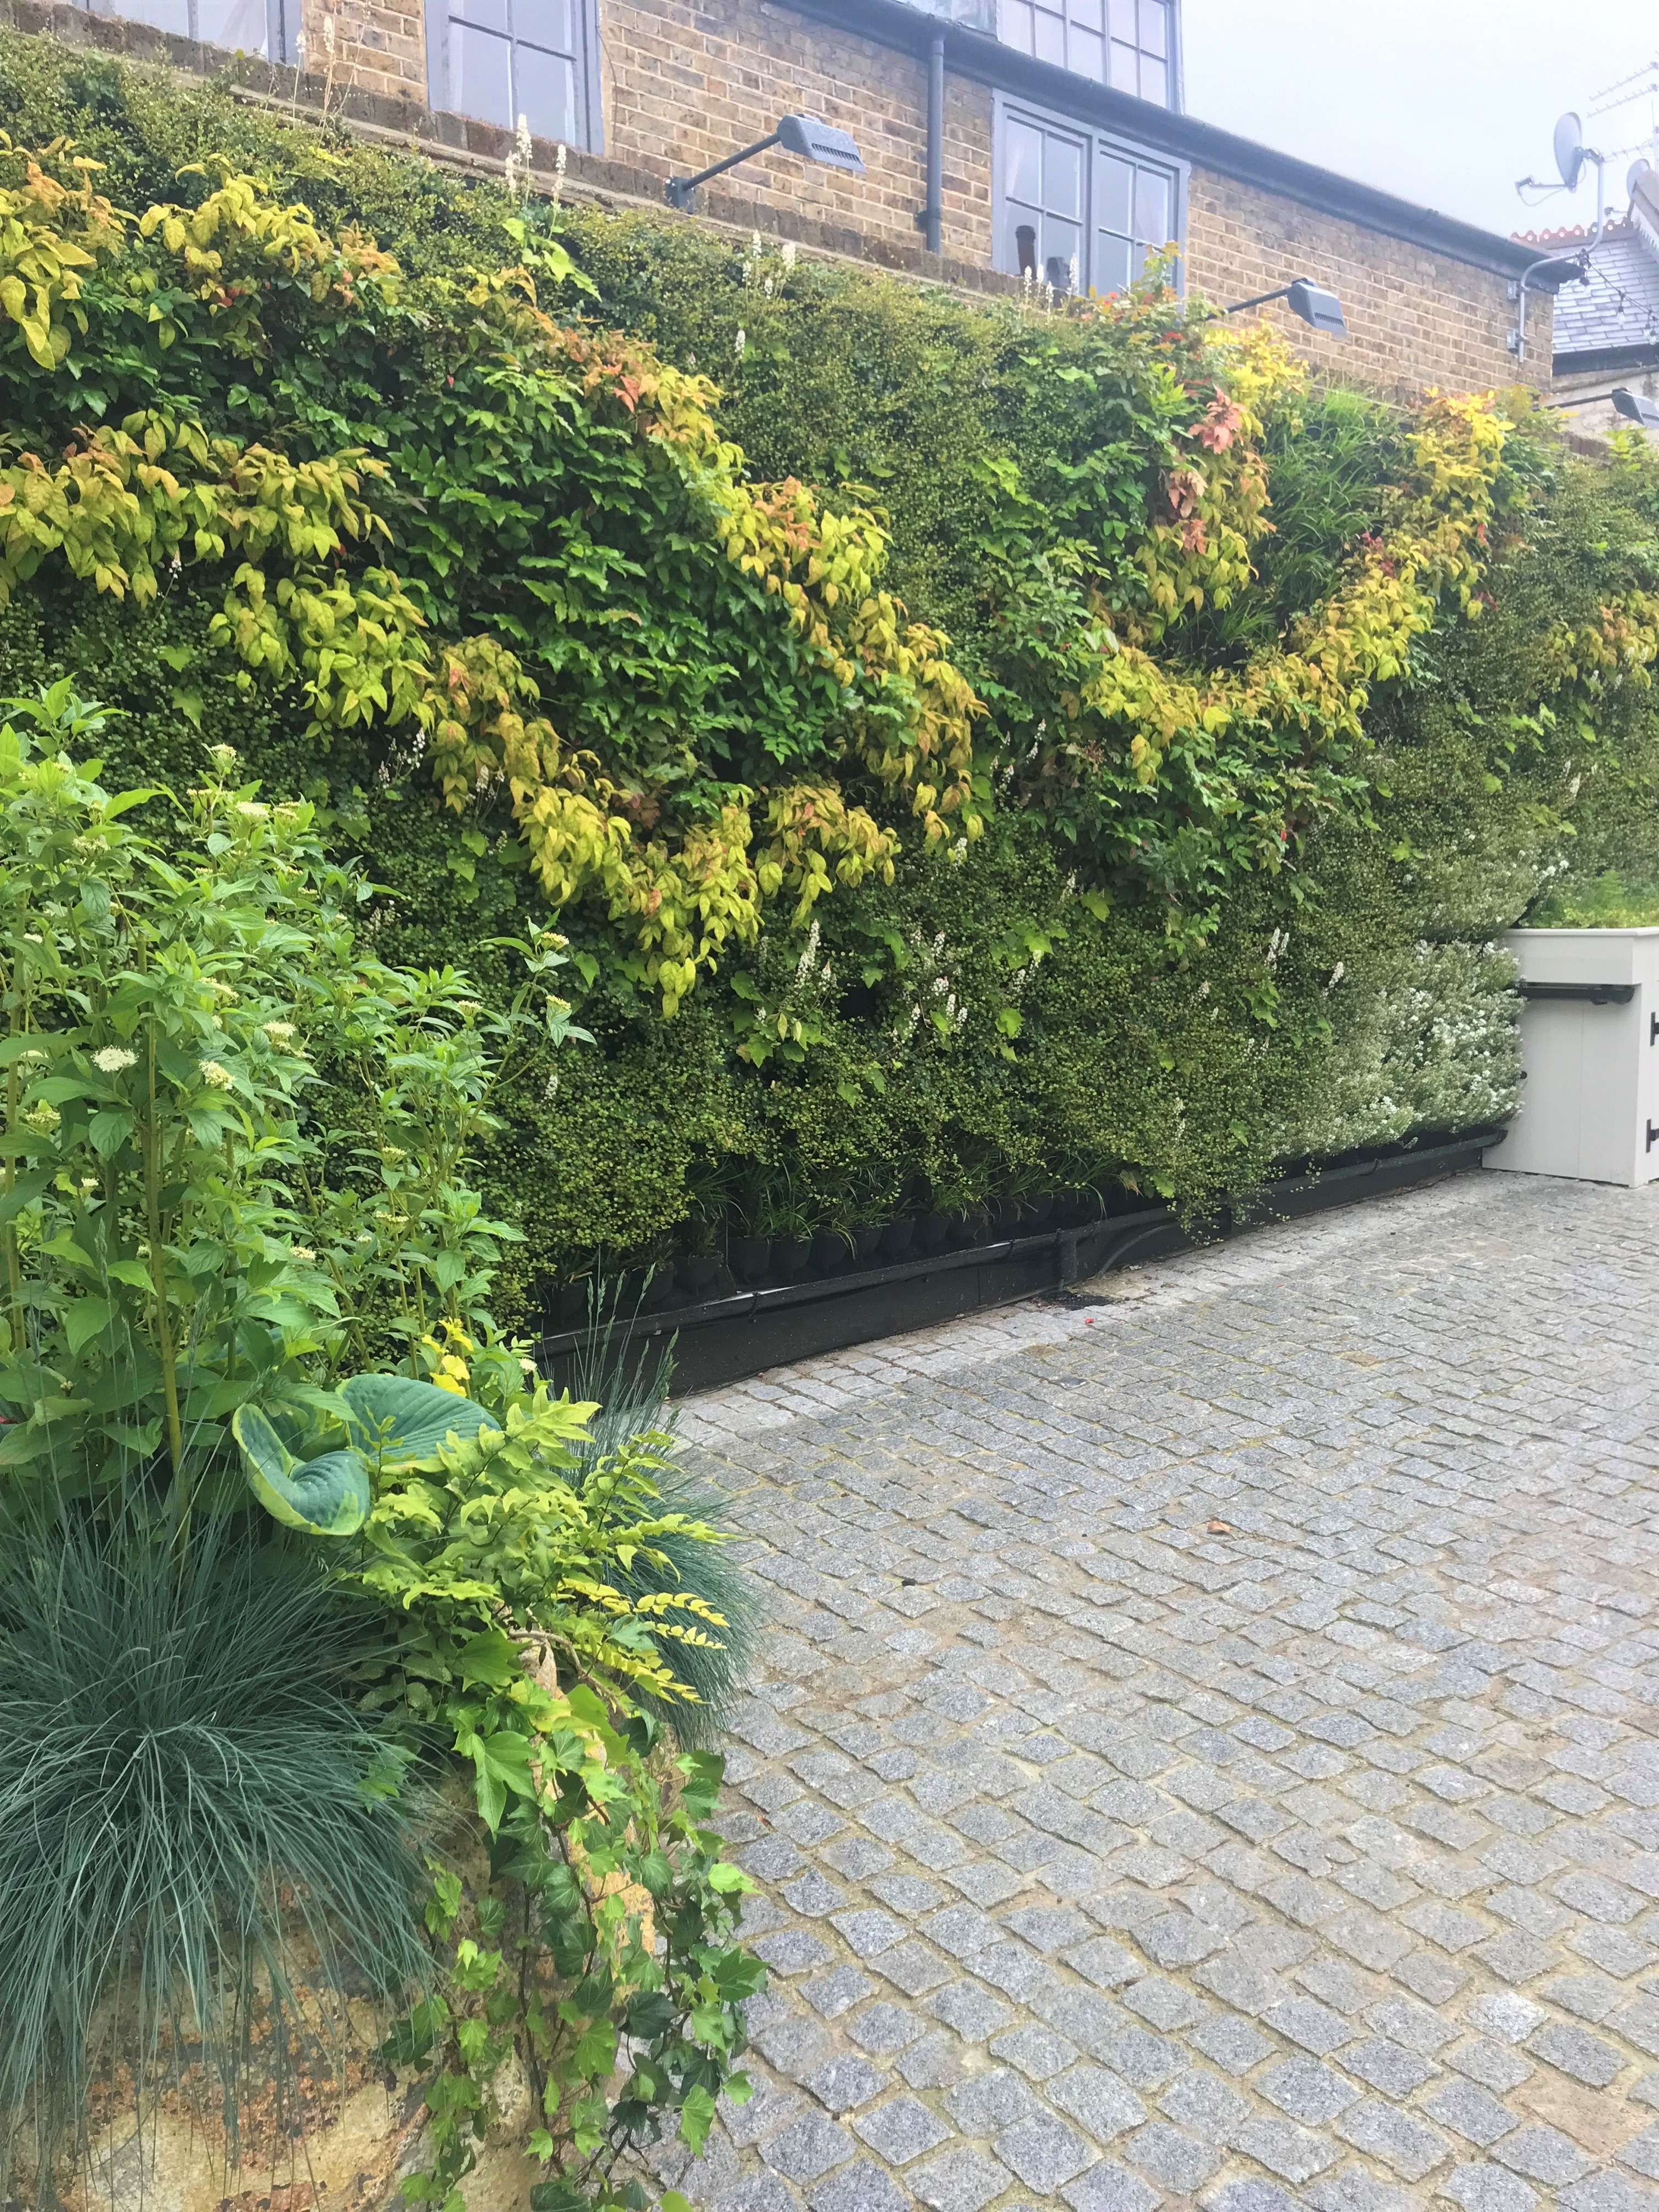 Living Walls for Property Developers Image of gated courtyard with Living Wall